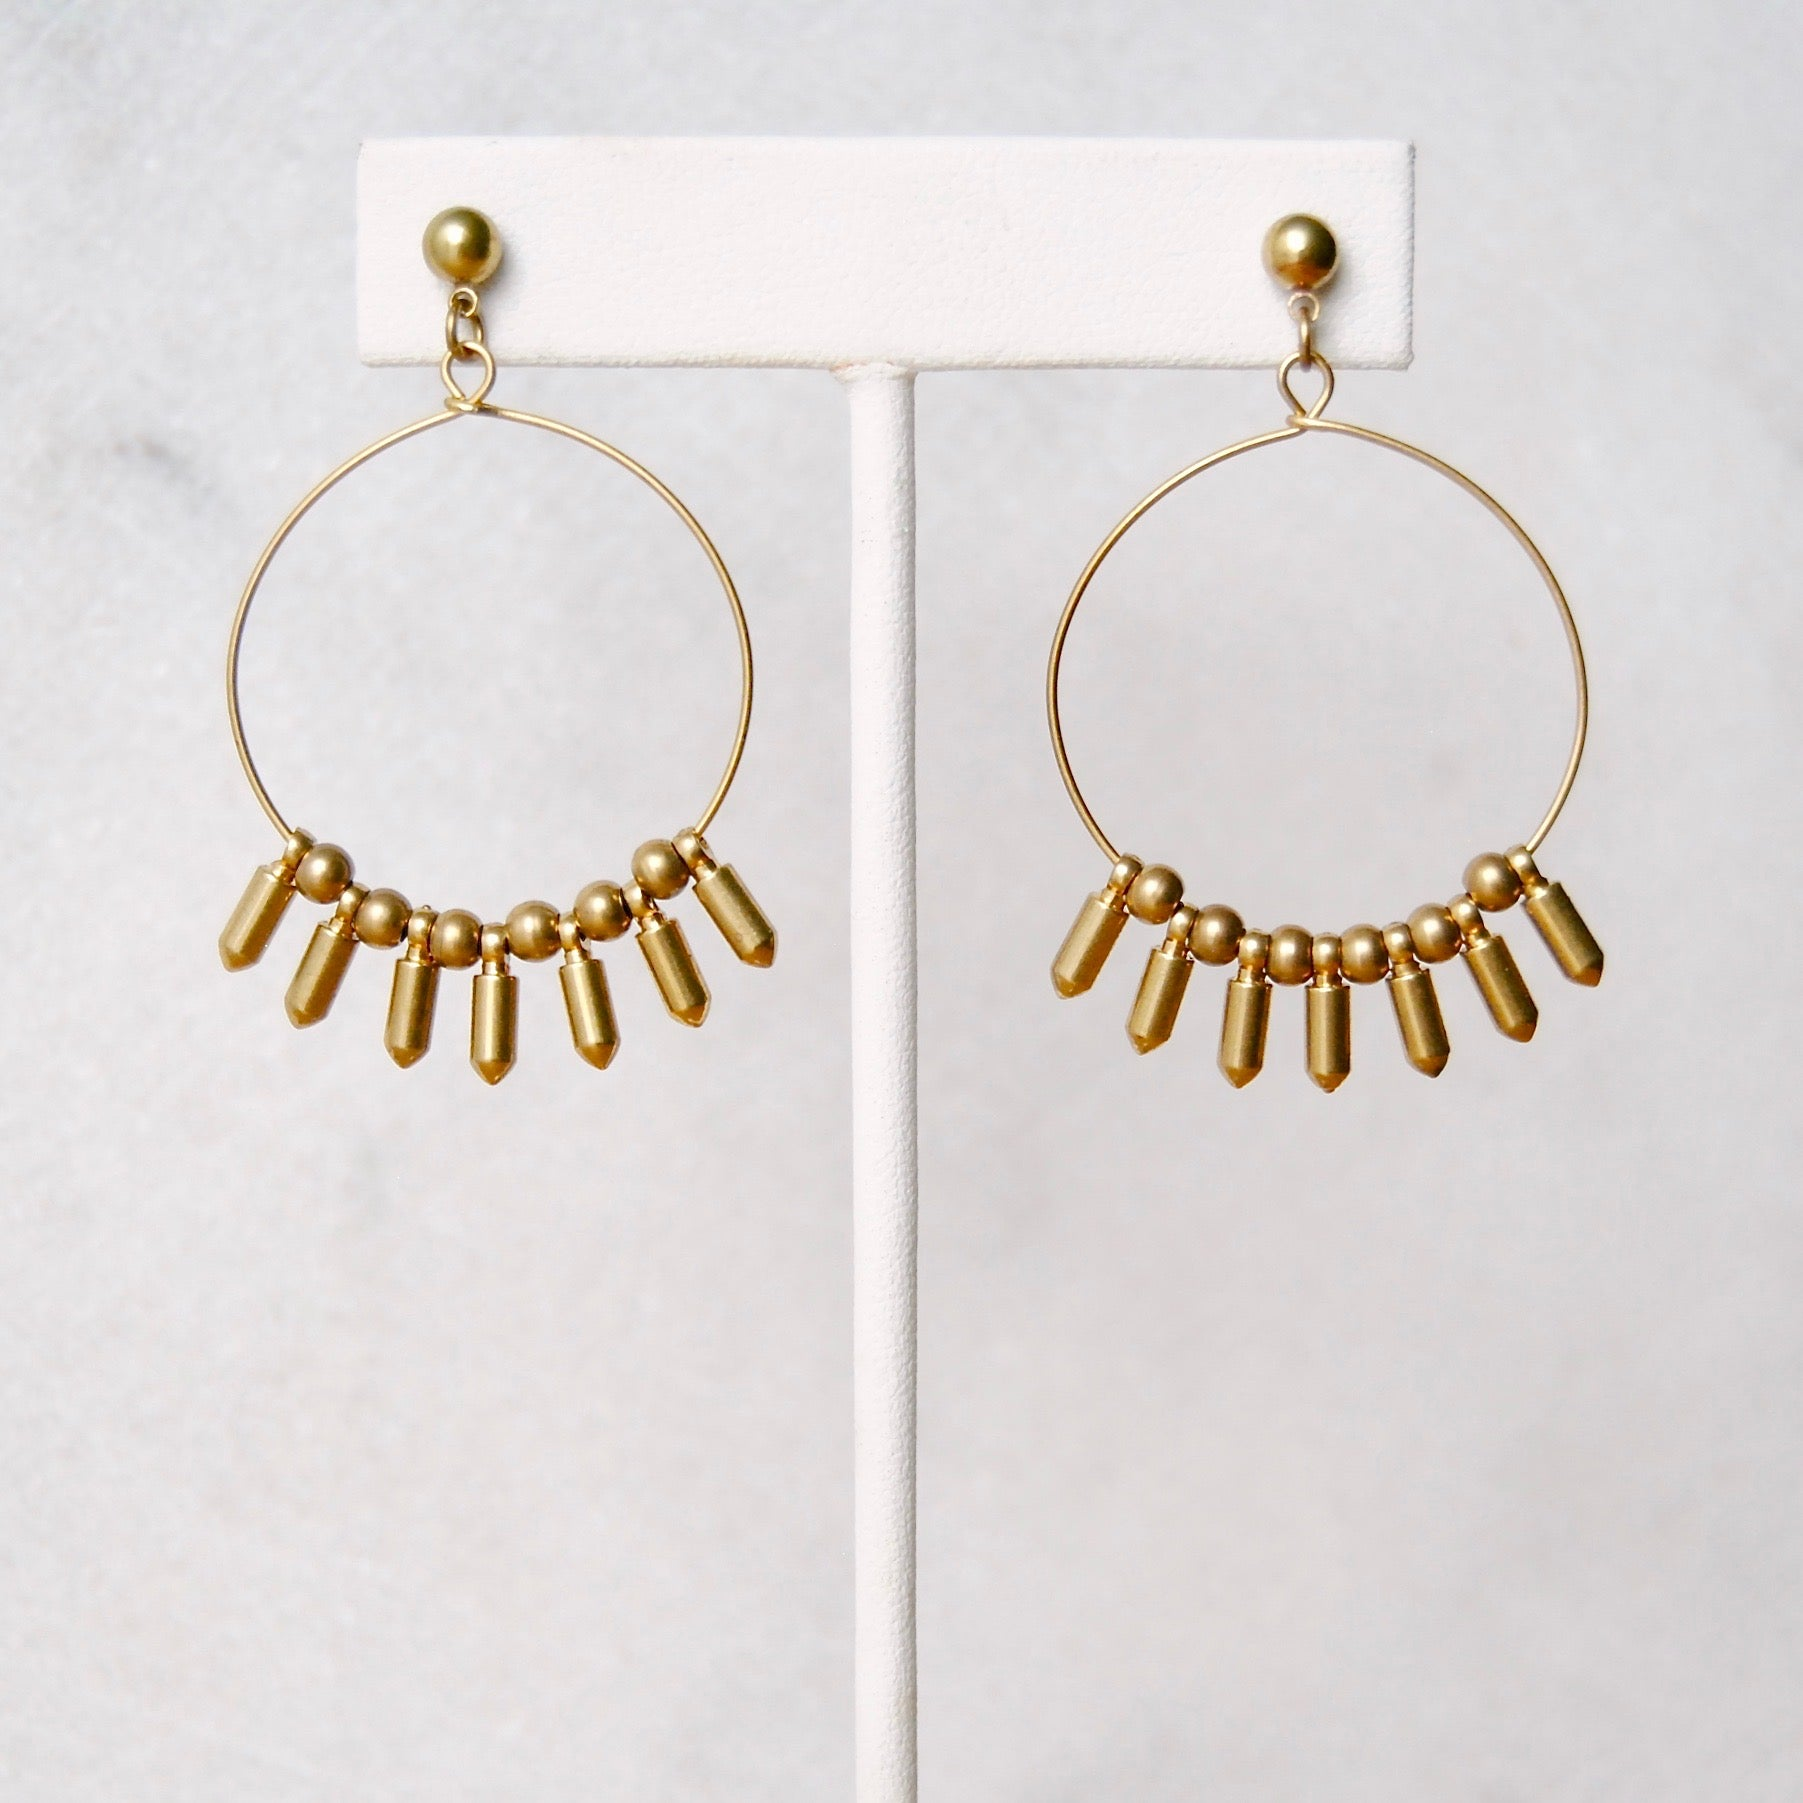 BULLET FRINGE EARRINGS